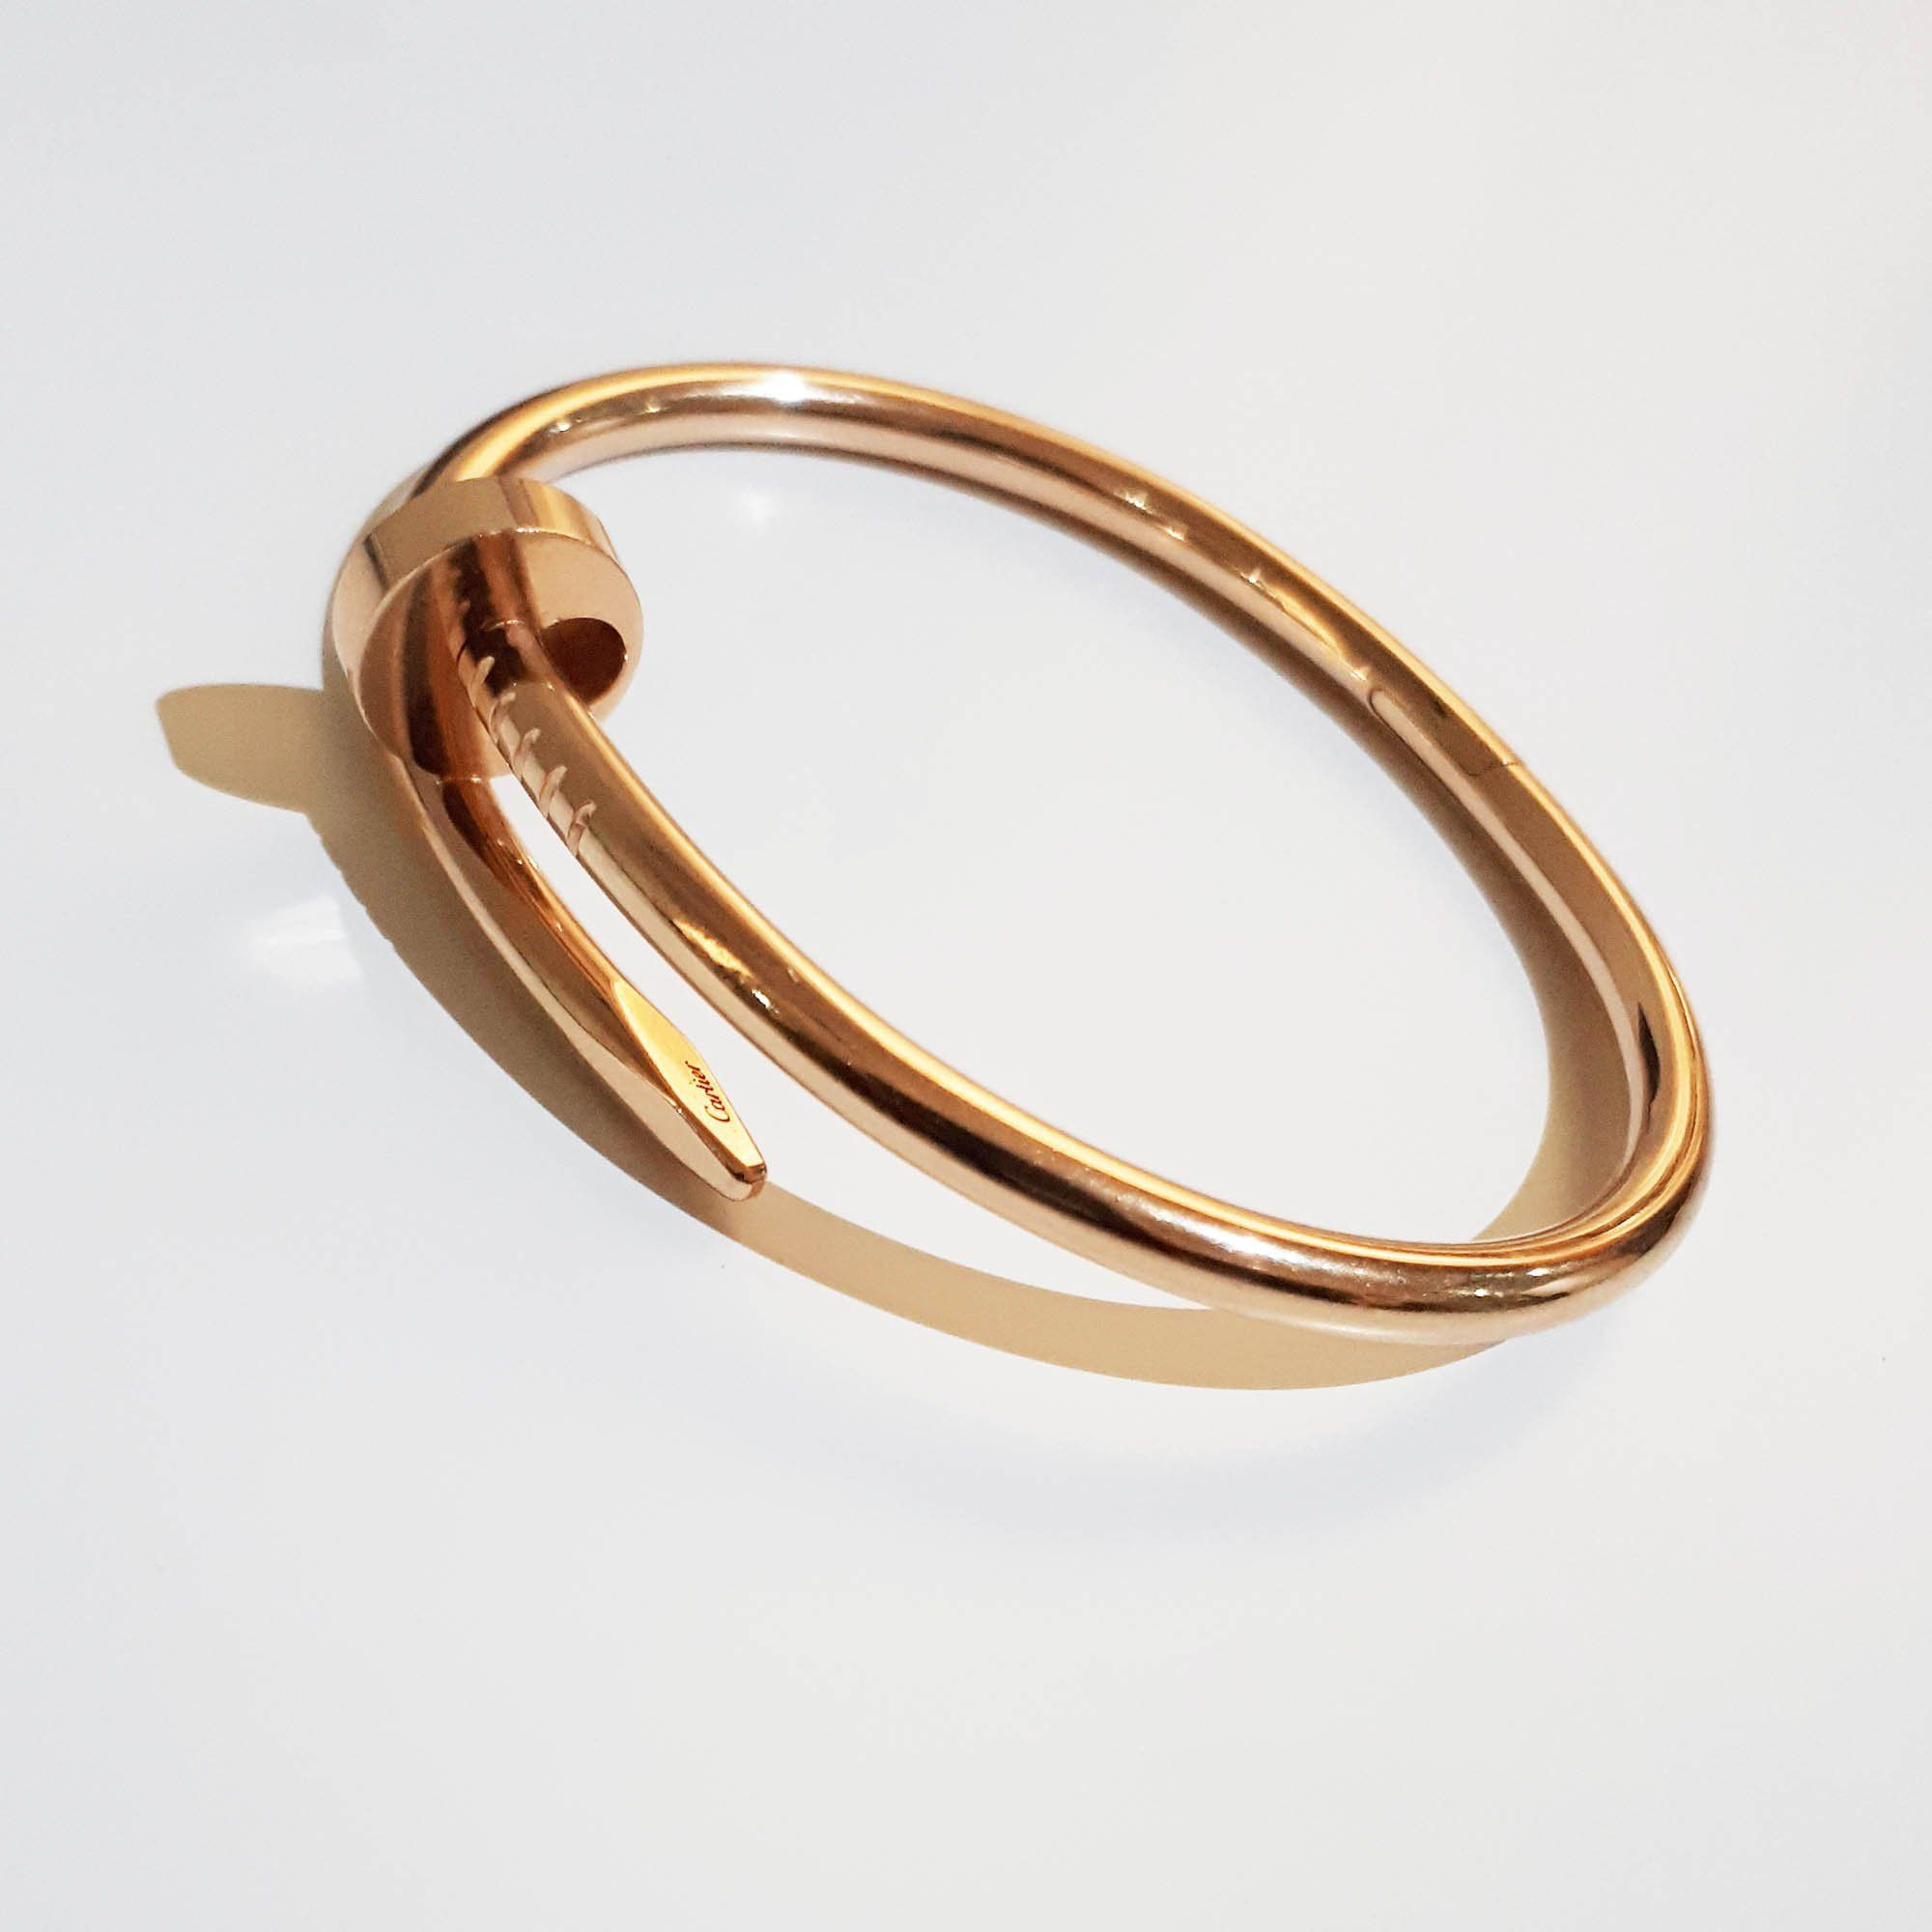 un gold cartier juste goo clou bracelet appealing at nail diamond